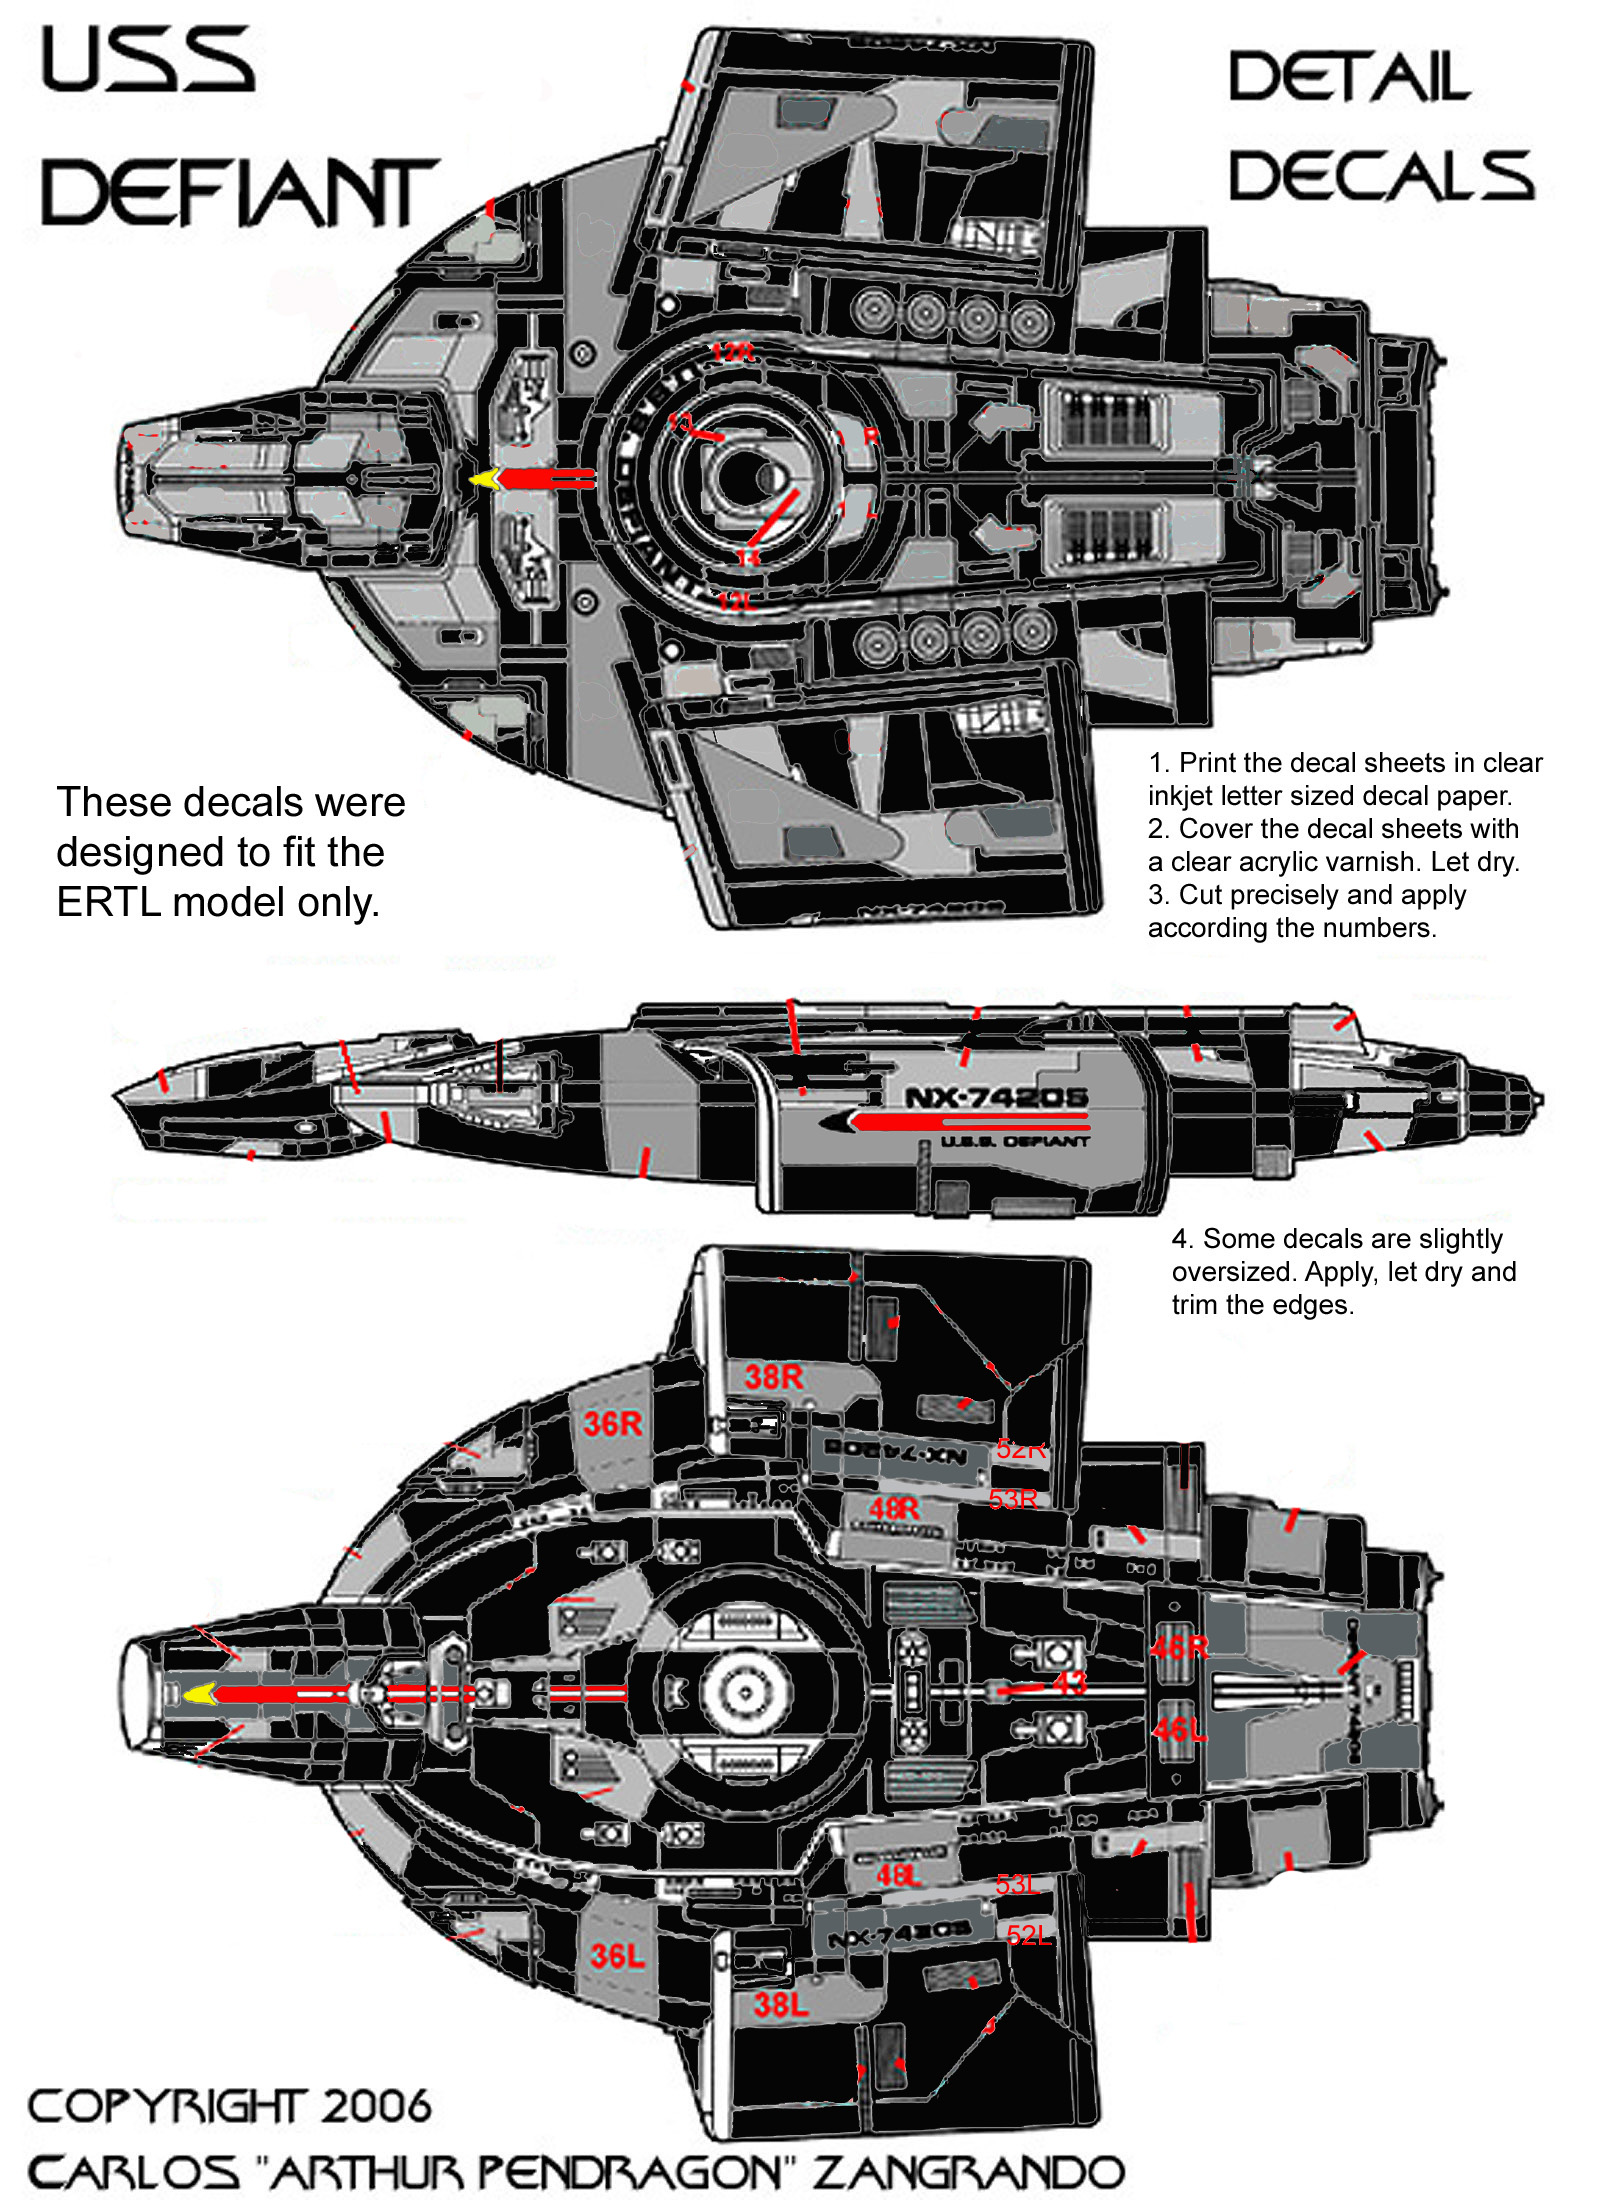 Section 31 U.S.S. Monitor Defiant Class, from the book The Return decals.jpg